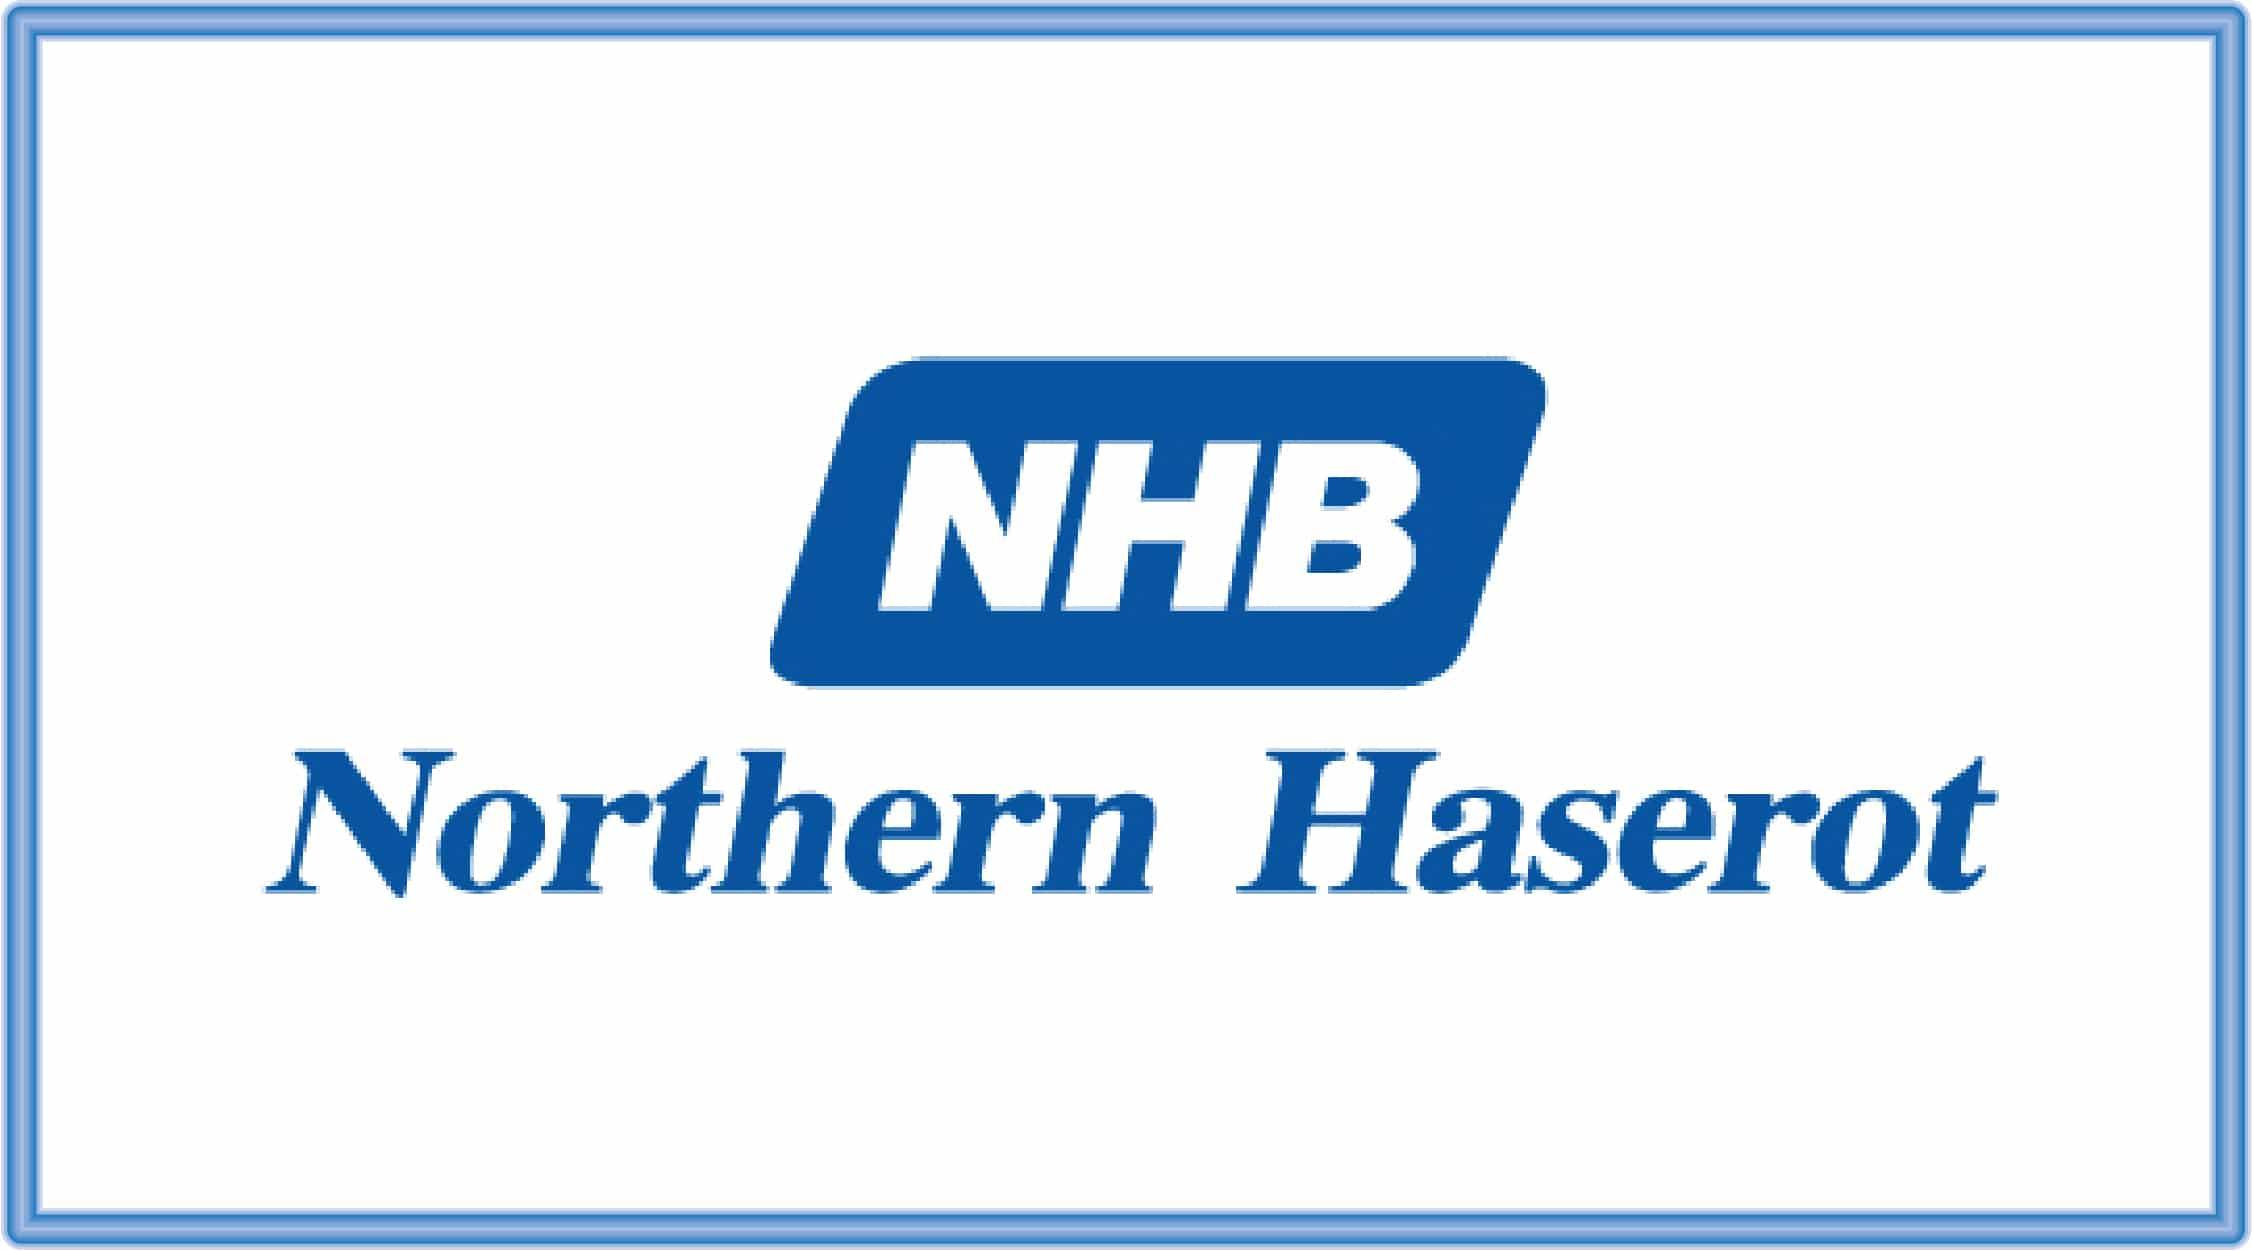 Northern Haserot